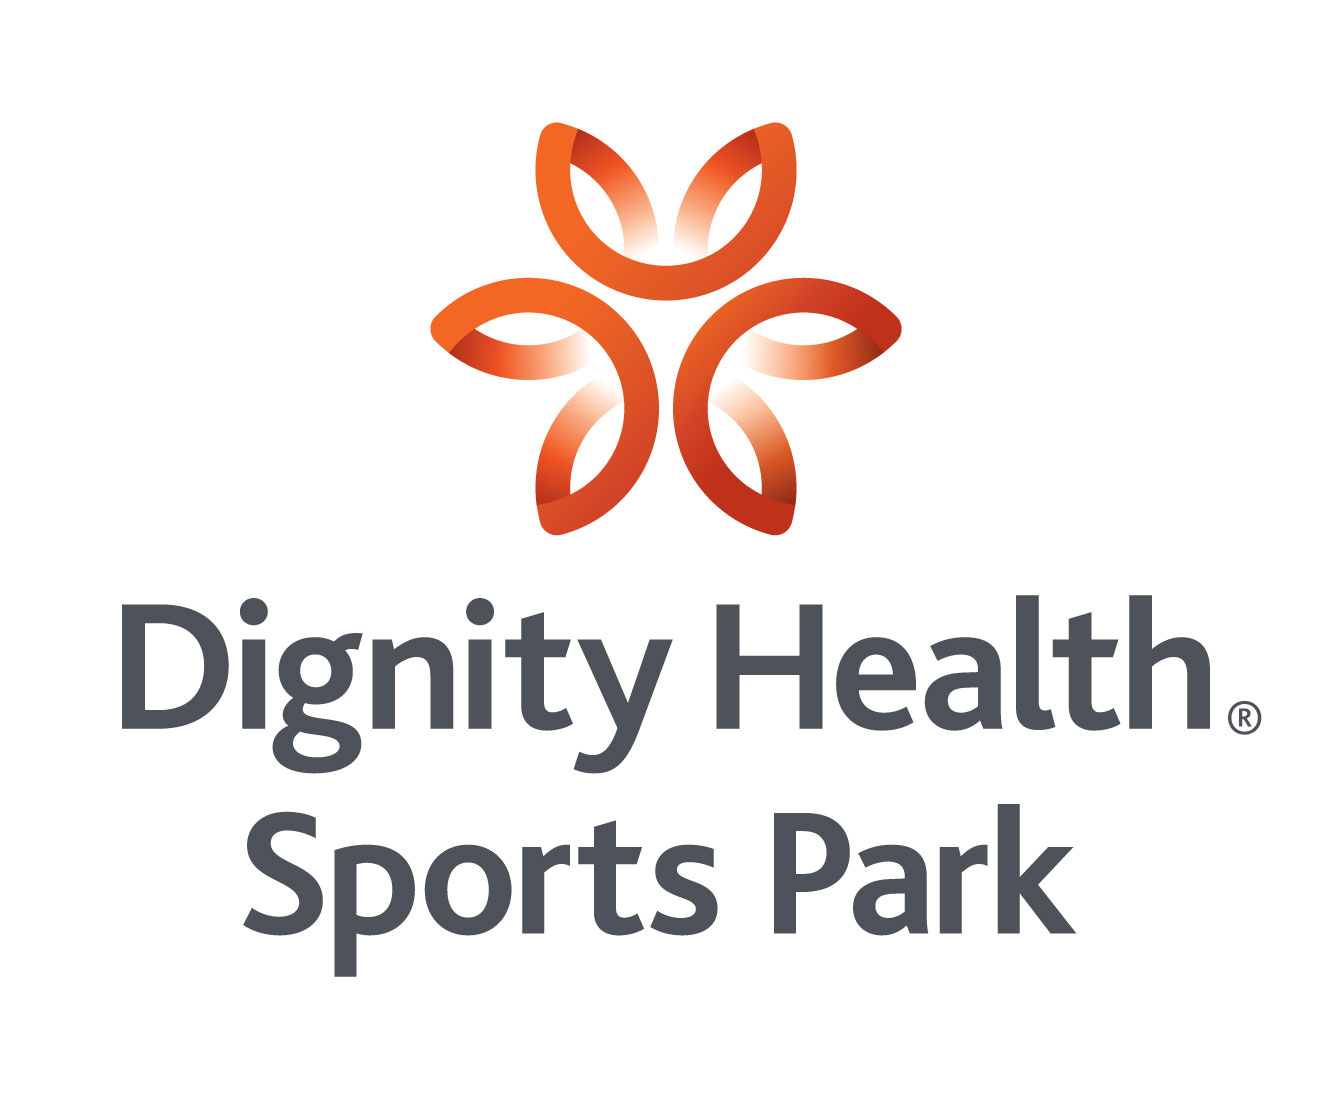 dignity-health-sports-park-logo-jpg